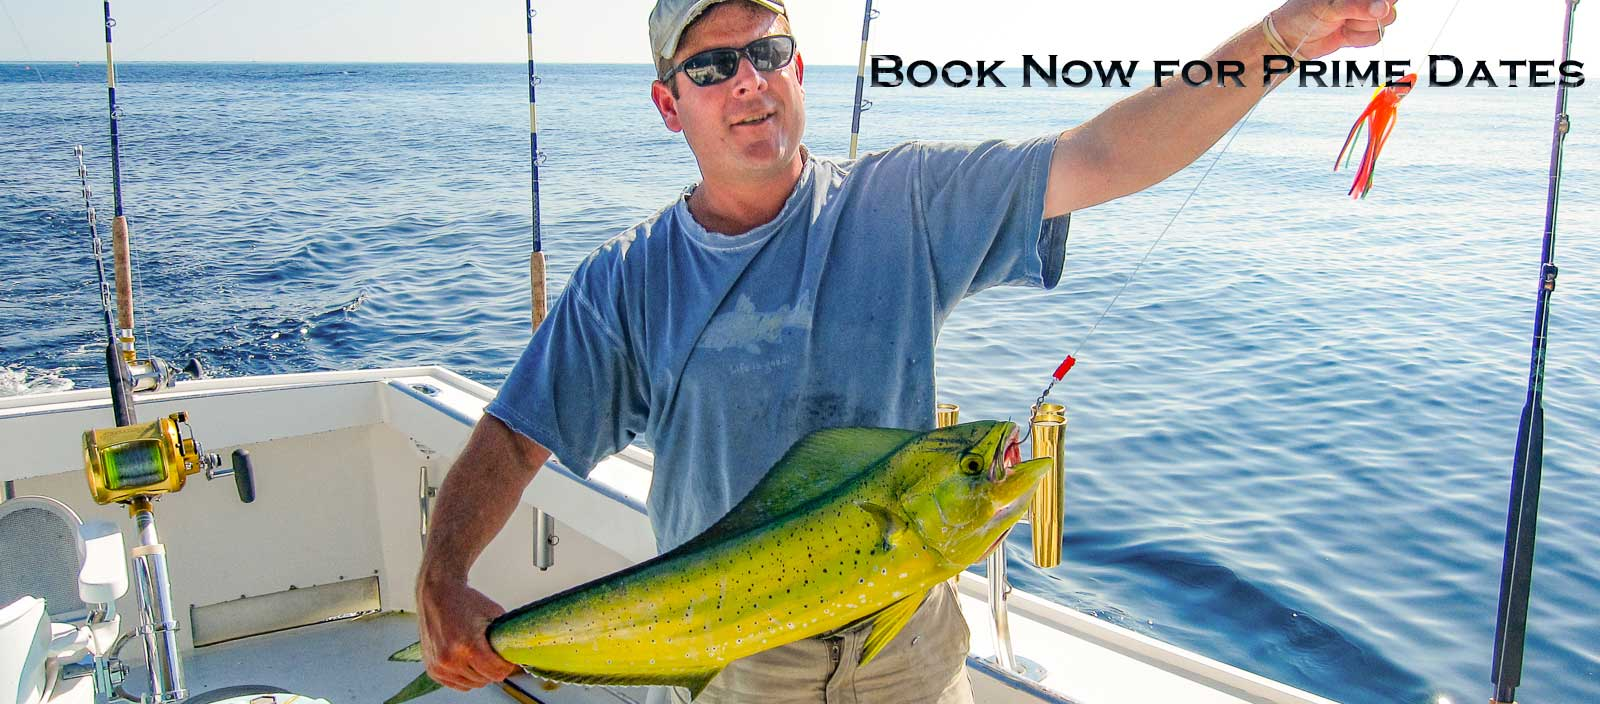 CT Fishing Charters book now for prime dates